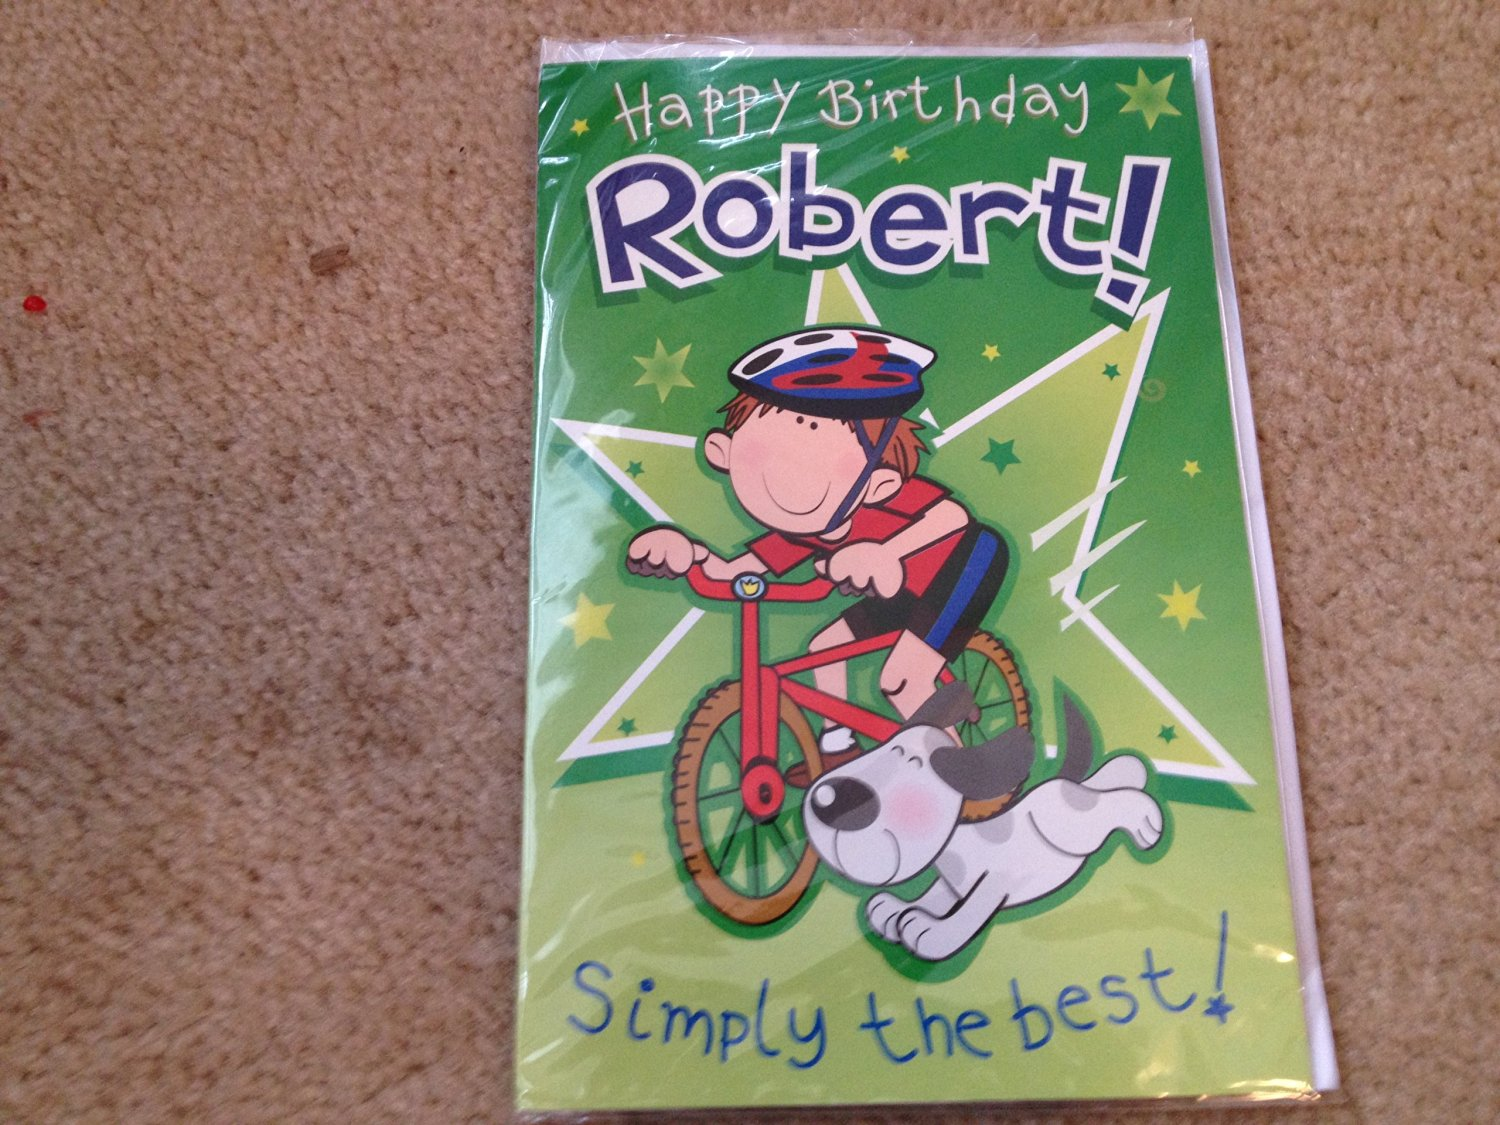 Happy Birthday Robert - Singing Birthday Card